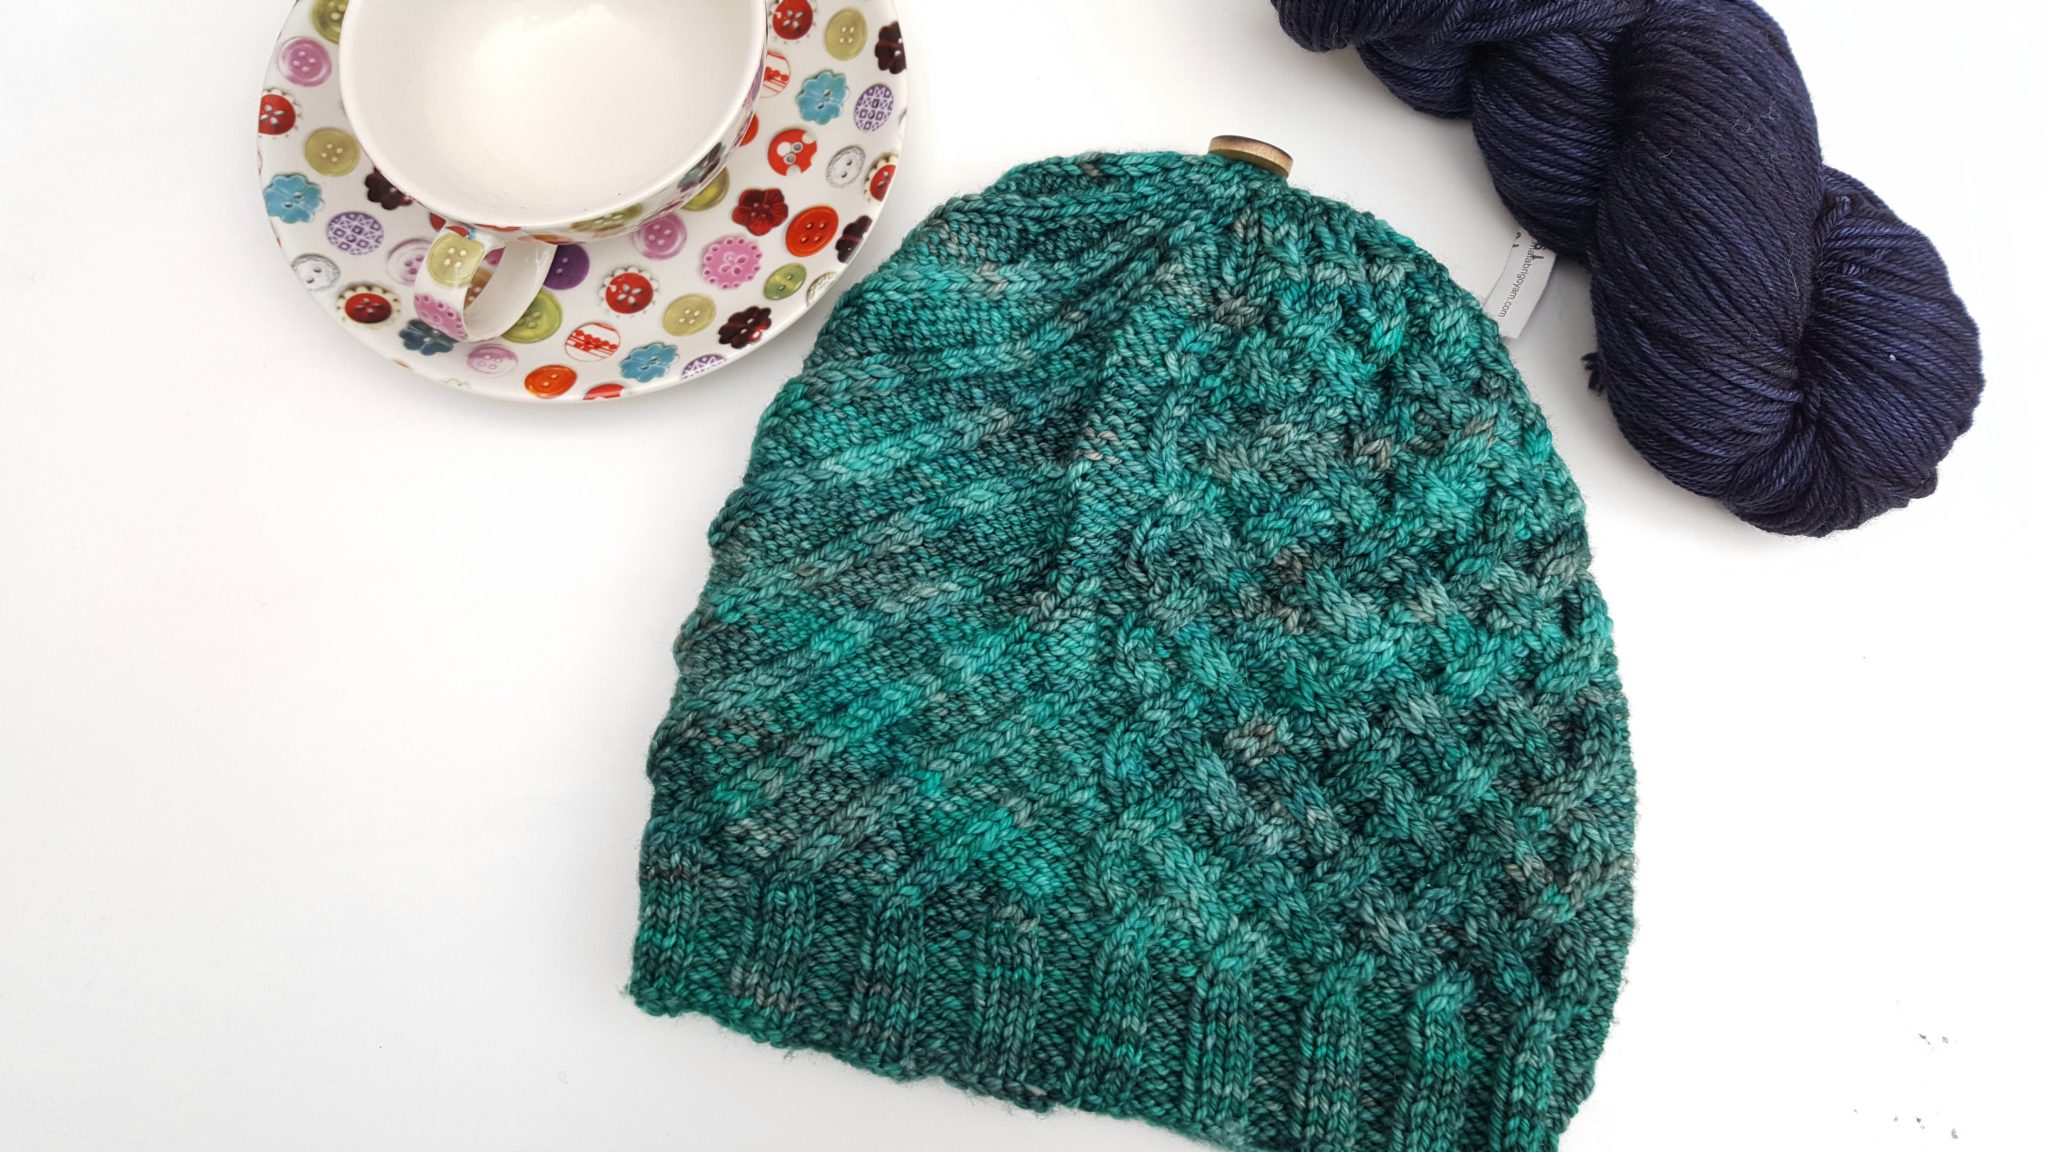 Craft | Hat-spiration: Inspiration for Handknit Hat Patterns